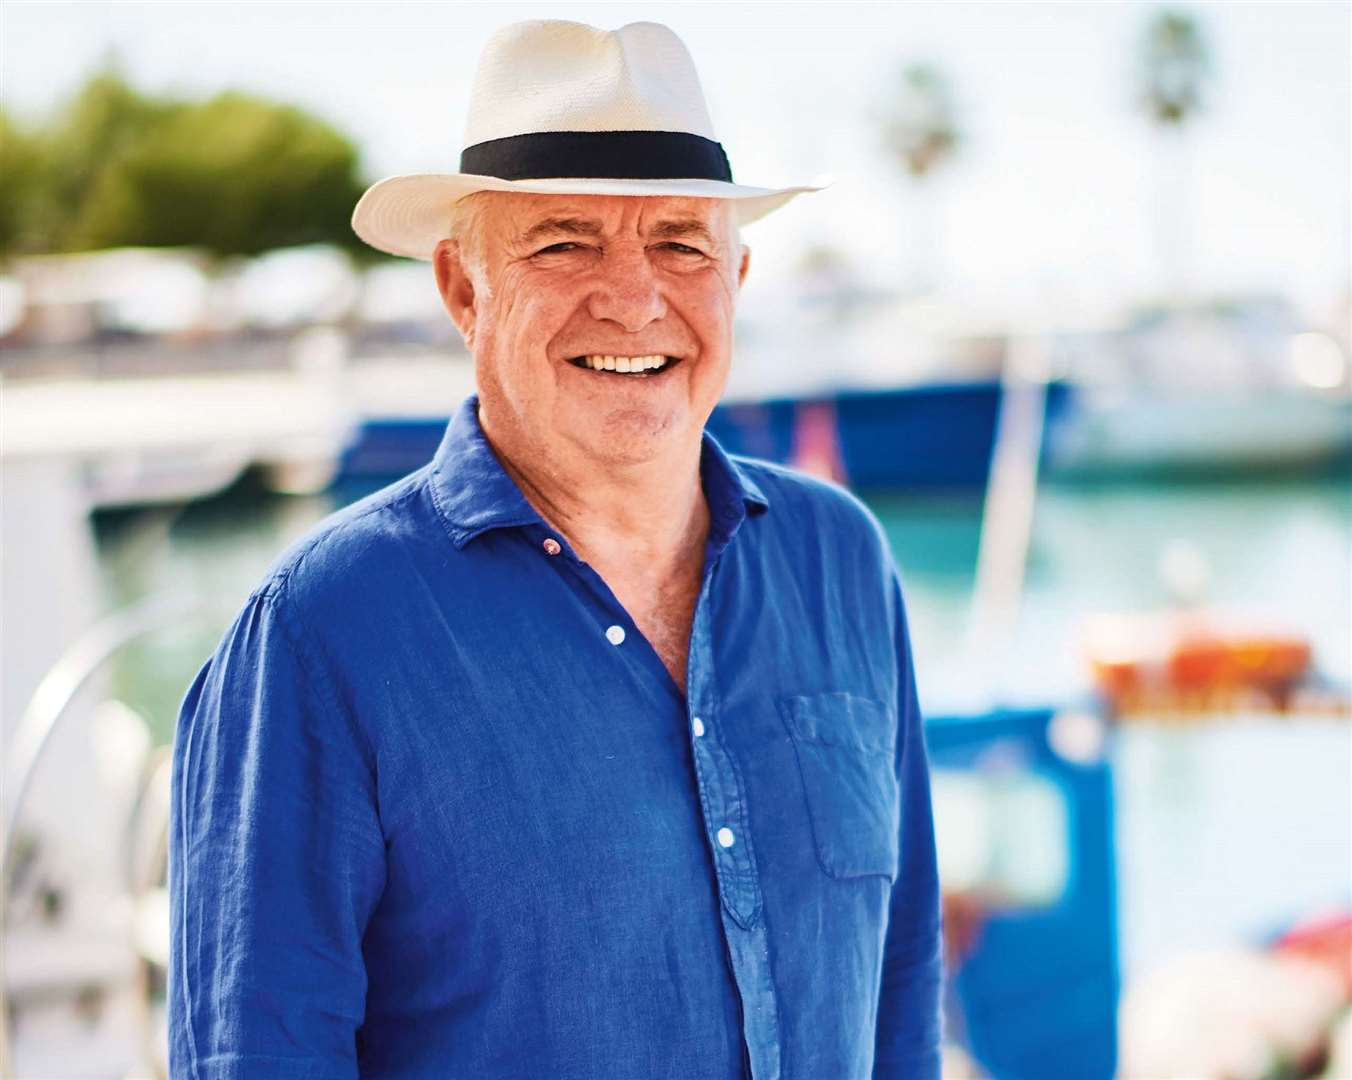 Rick Stein will be cooking for visitors to the Alfresco Drive-in Theatre at the Hop Farm